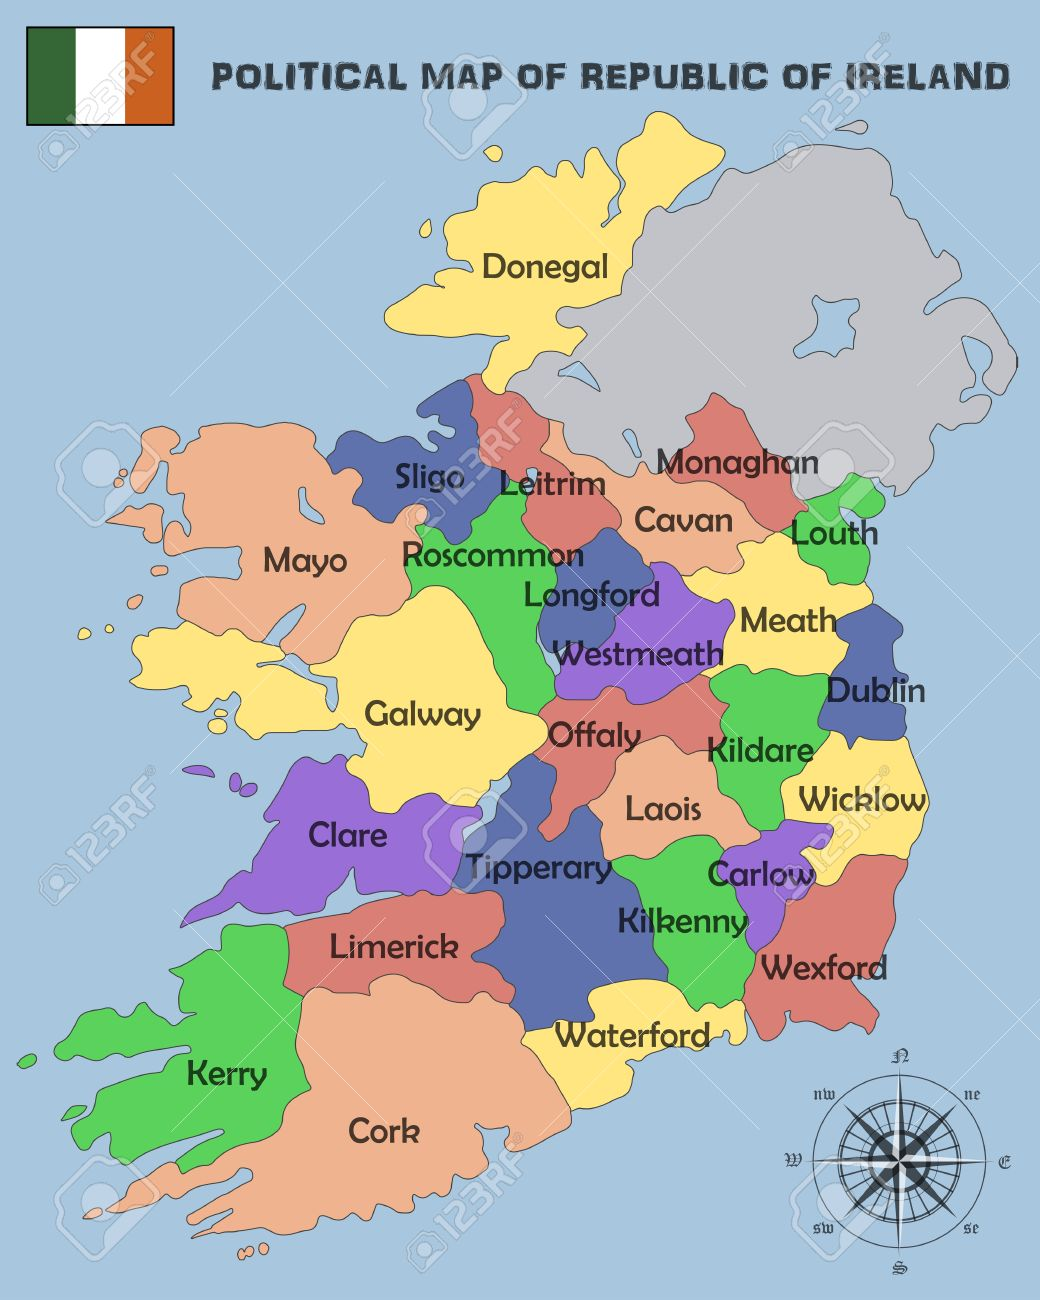 Political Map Of Republic Of Ireland Royalty Free Cliparts - Ireland political map